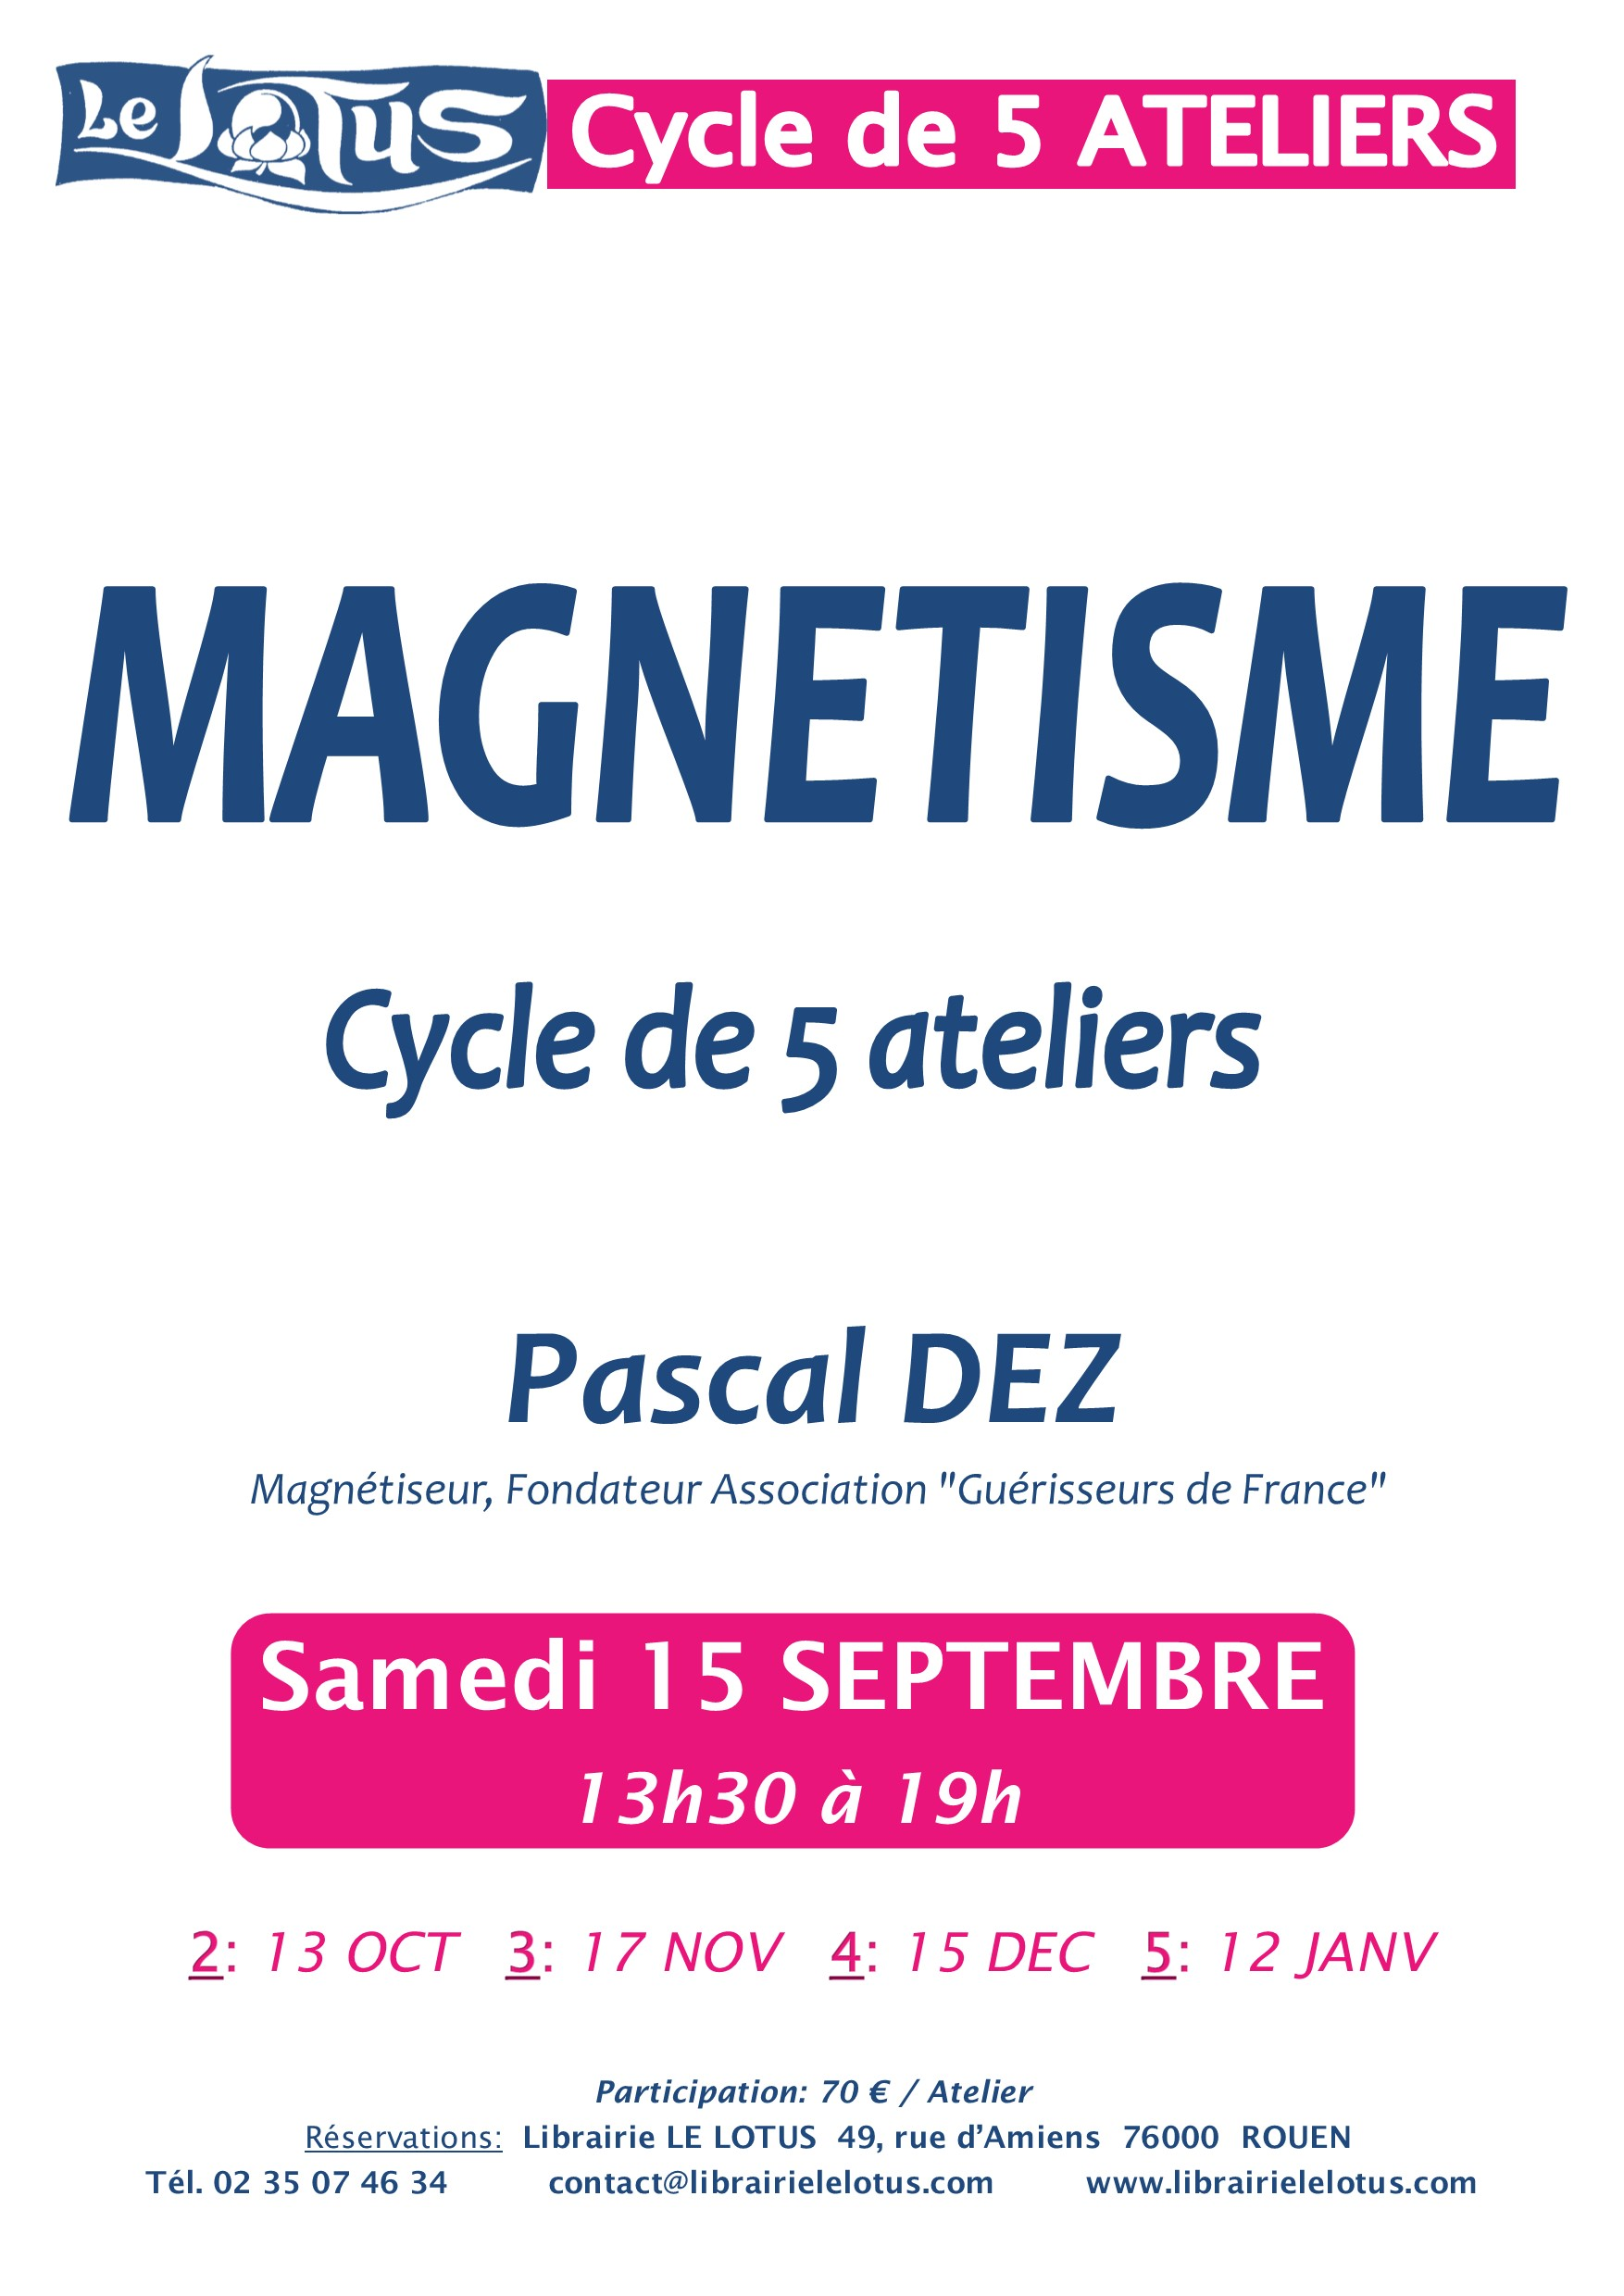 CYCLE  5 ATELIERS - MAGNETISME